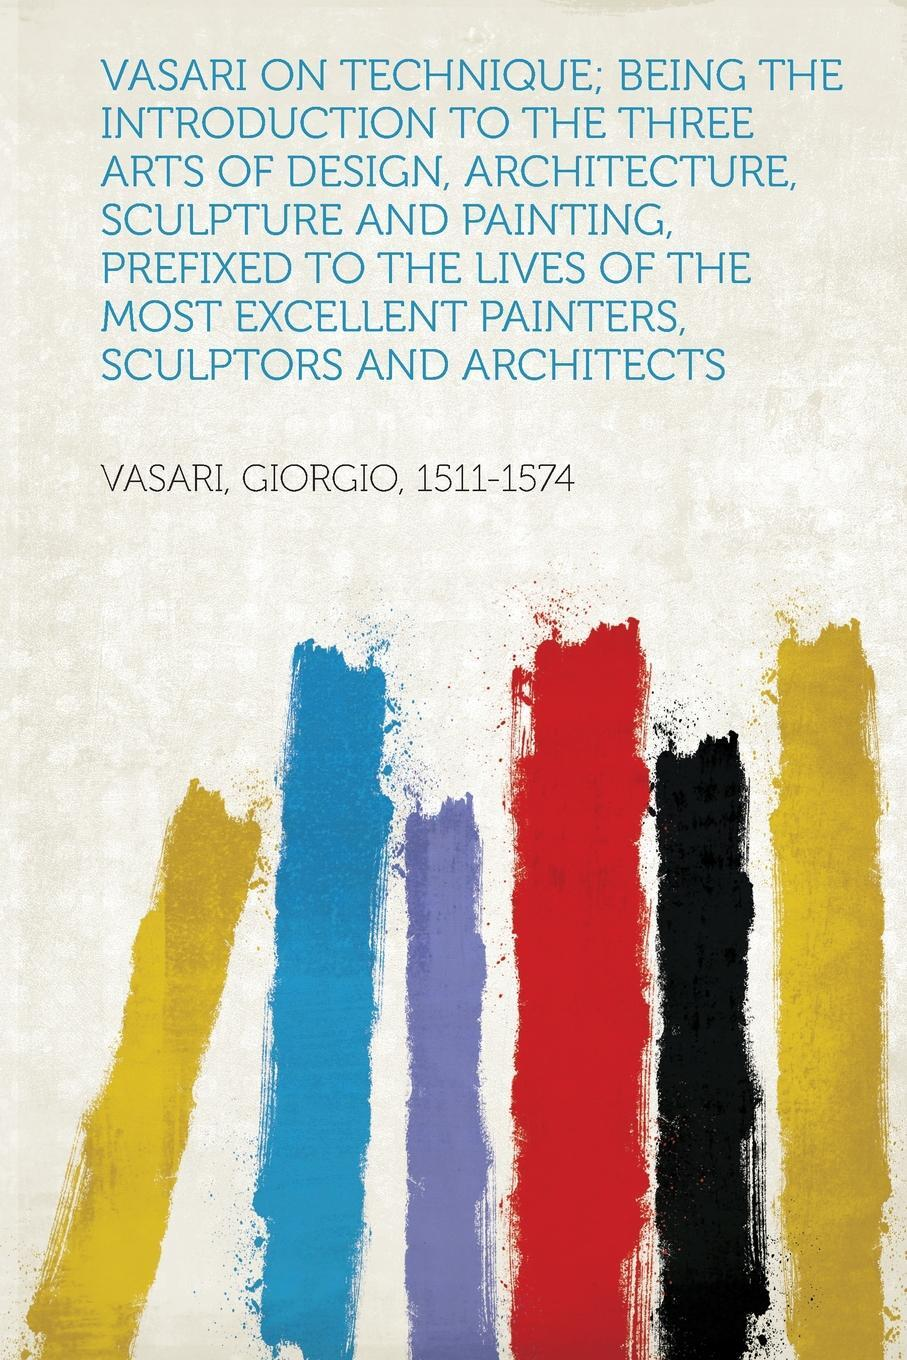 Vasari on Technique; Being the Introduction to the Three Arts of Design, Architecture, Sculpture and Painting, Prefixed to the Lives of the Most Excel